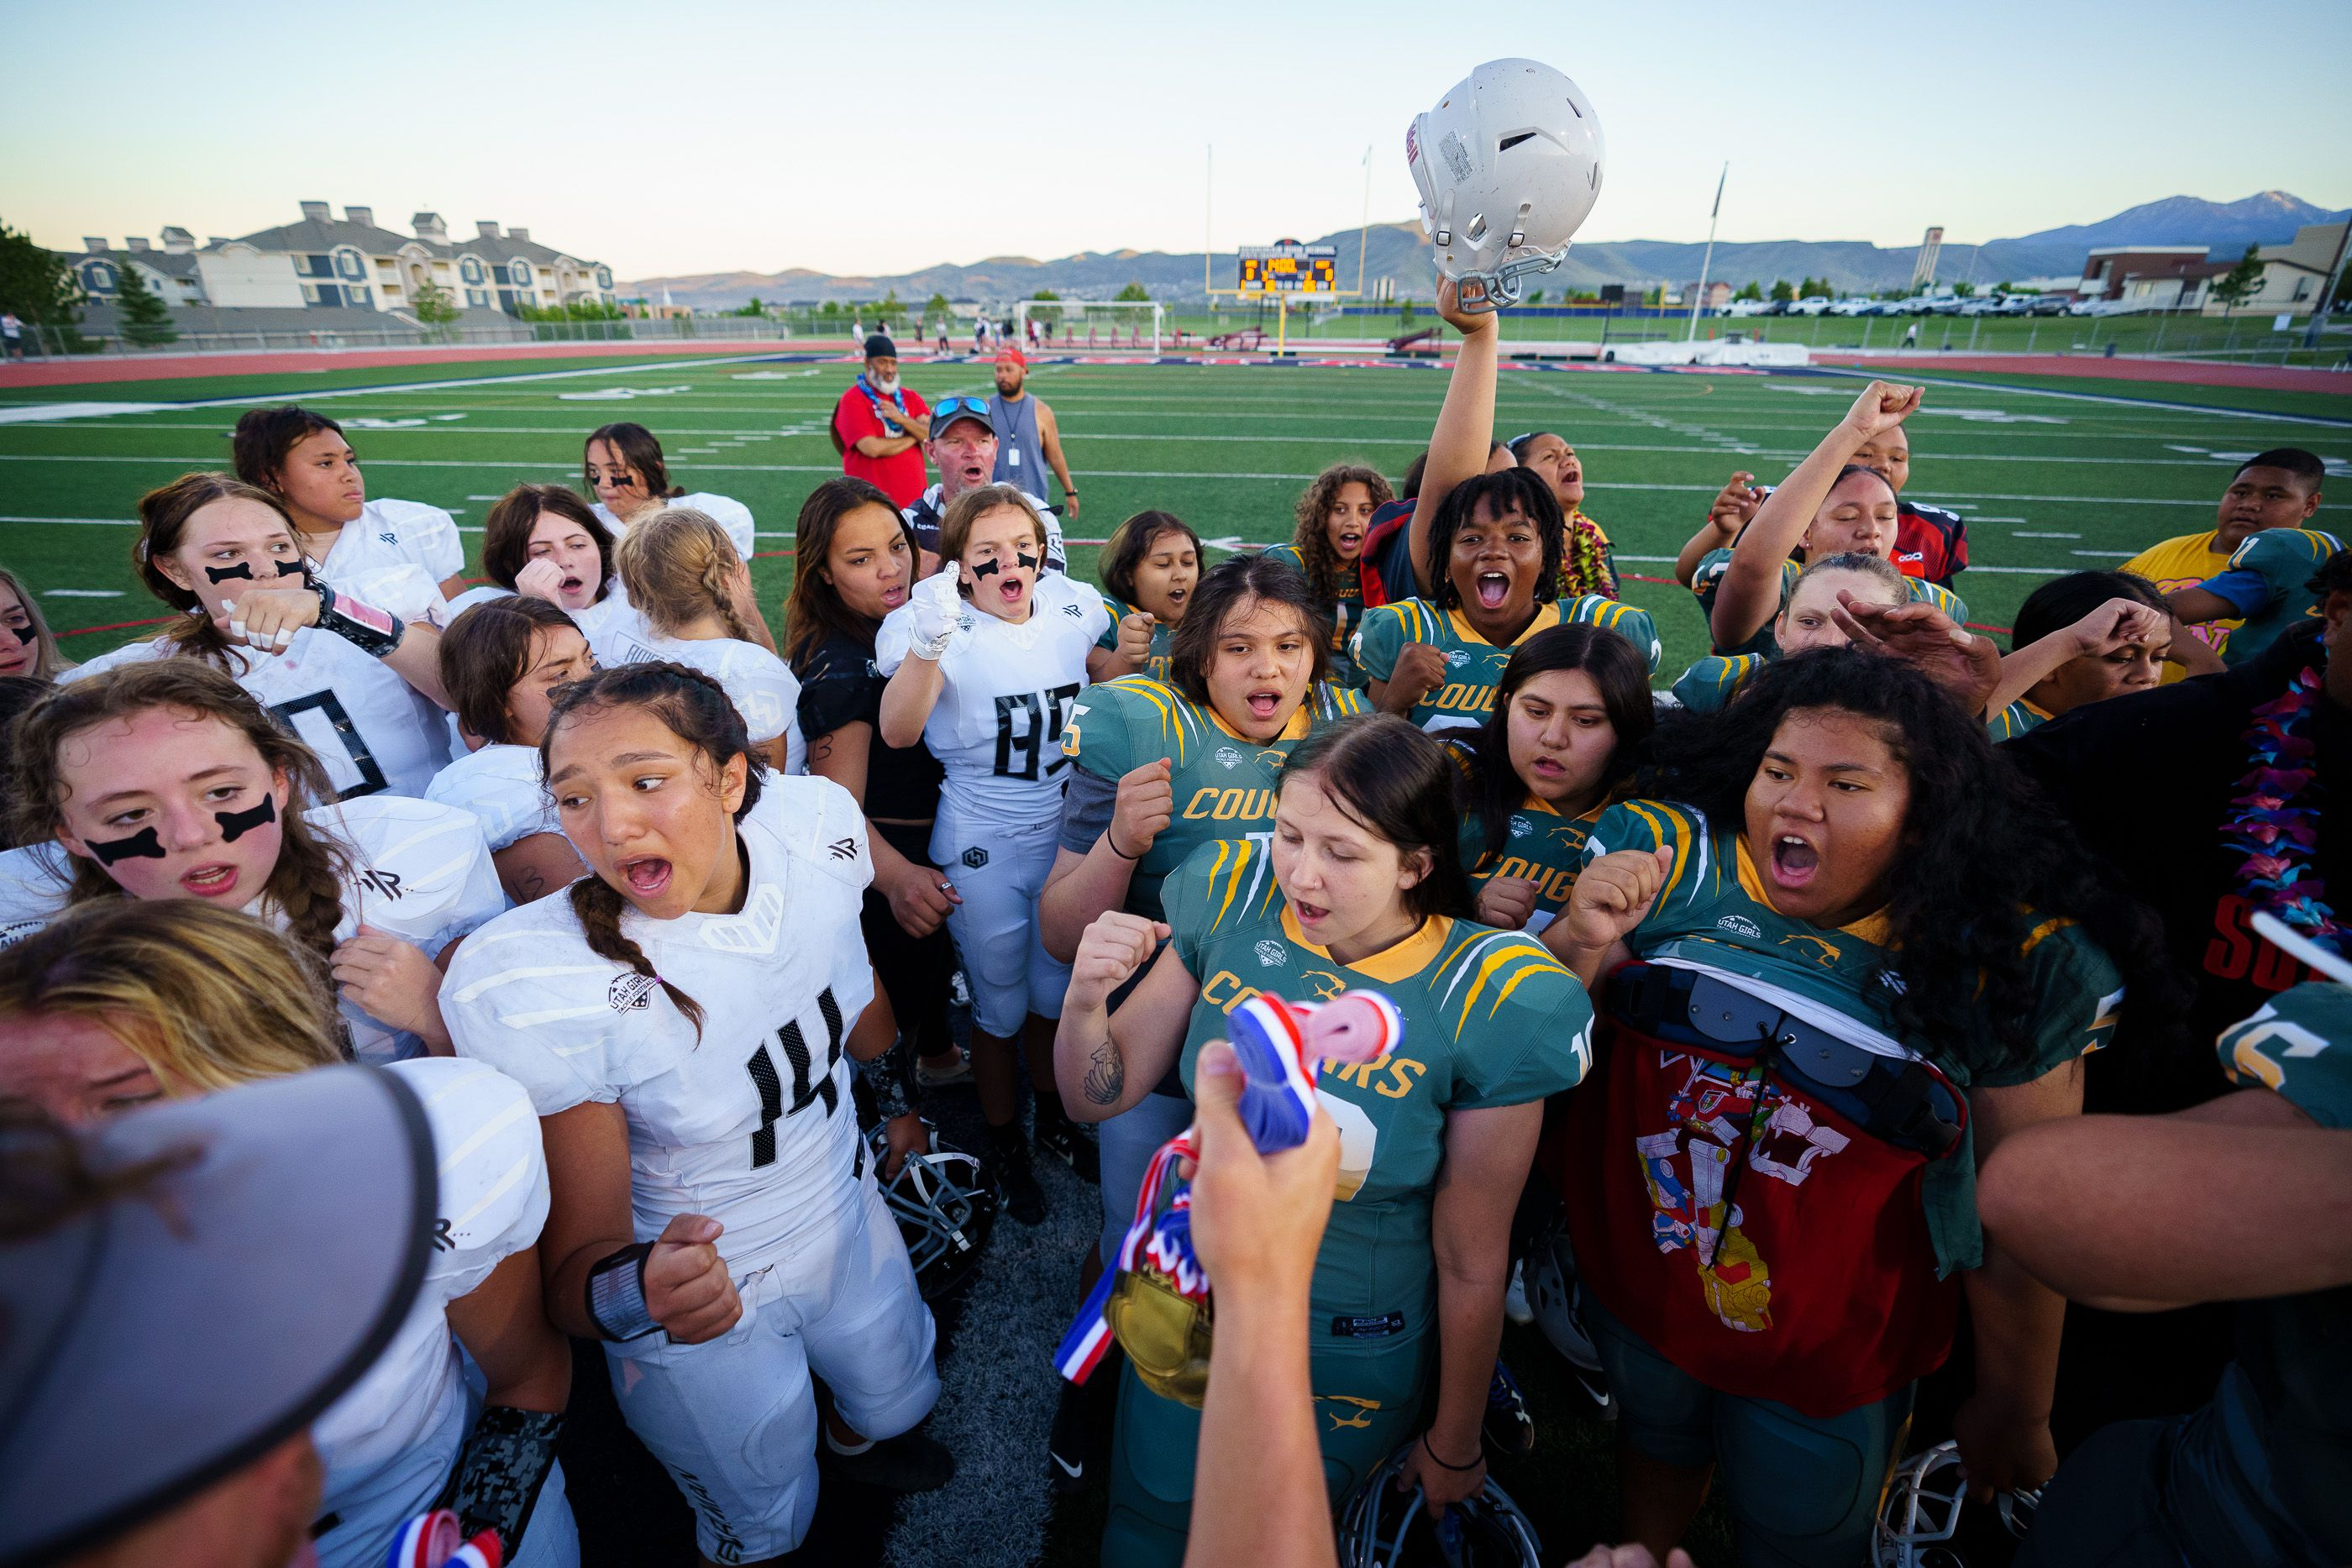 (Trent Nelson     The Salt Lake Tribune)  Players from Herriman and Kearns gather after their game in the Utah Girls Tackle Football League Division 3 championship game at Herriman High School on Thursday, May 27, 2021.